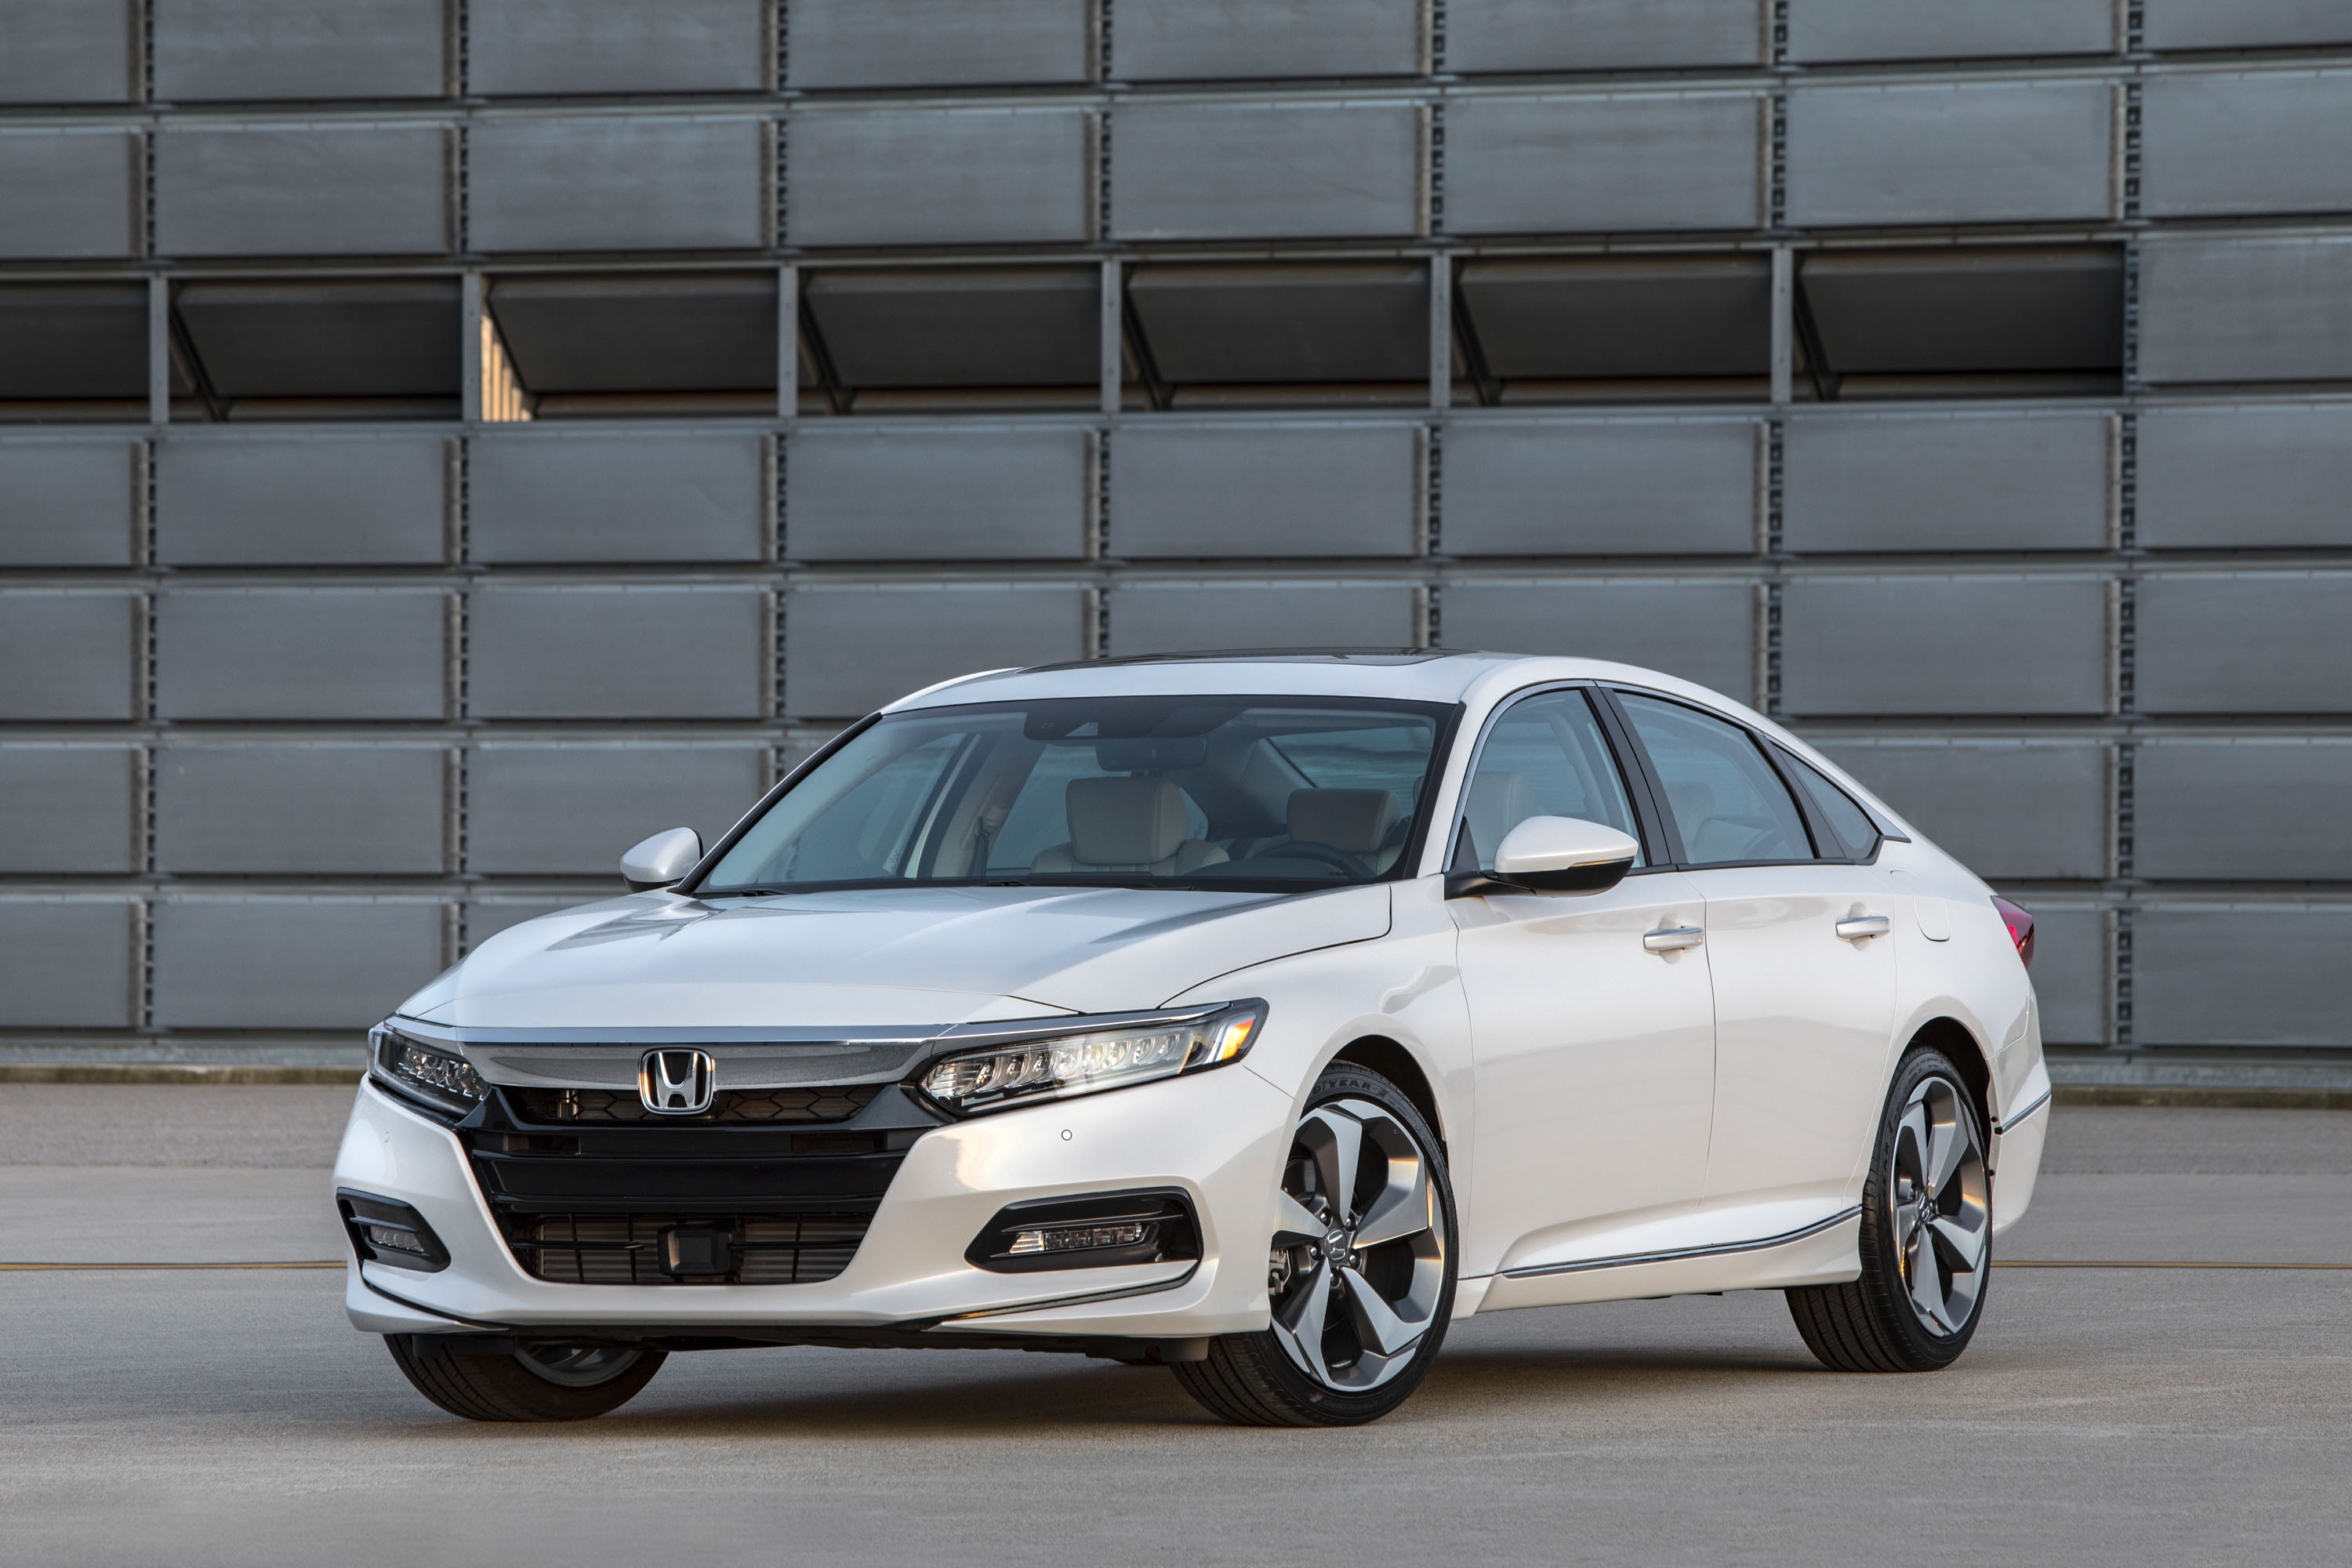 The Honda Accord Gives Us Some Mixed Feelings Top Speed - 2018 acura tsx front grill